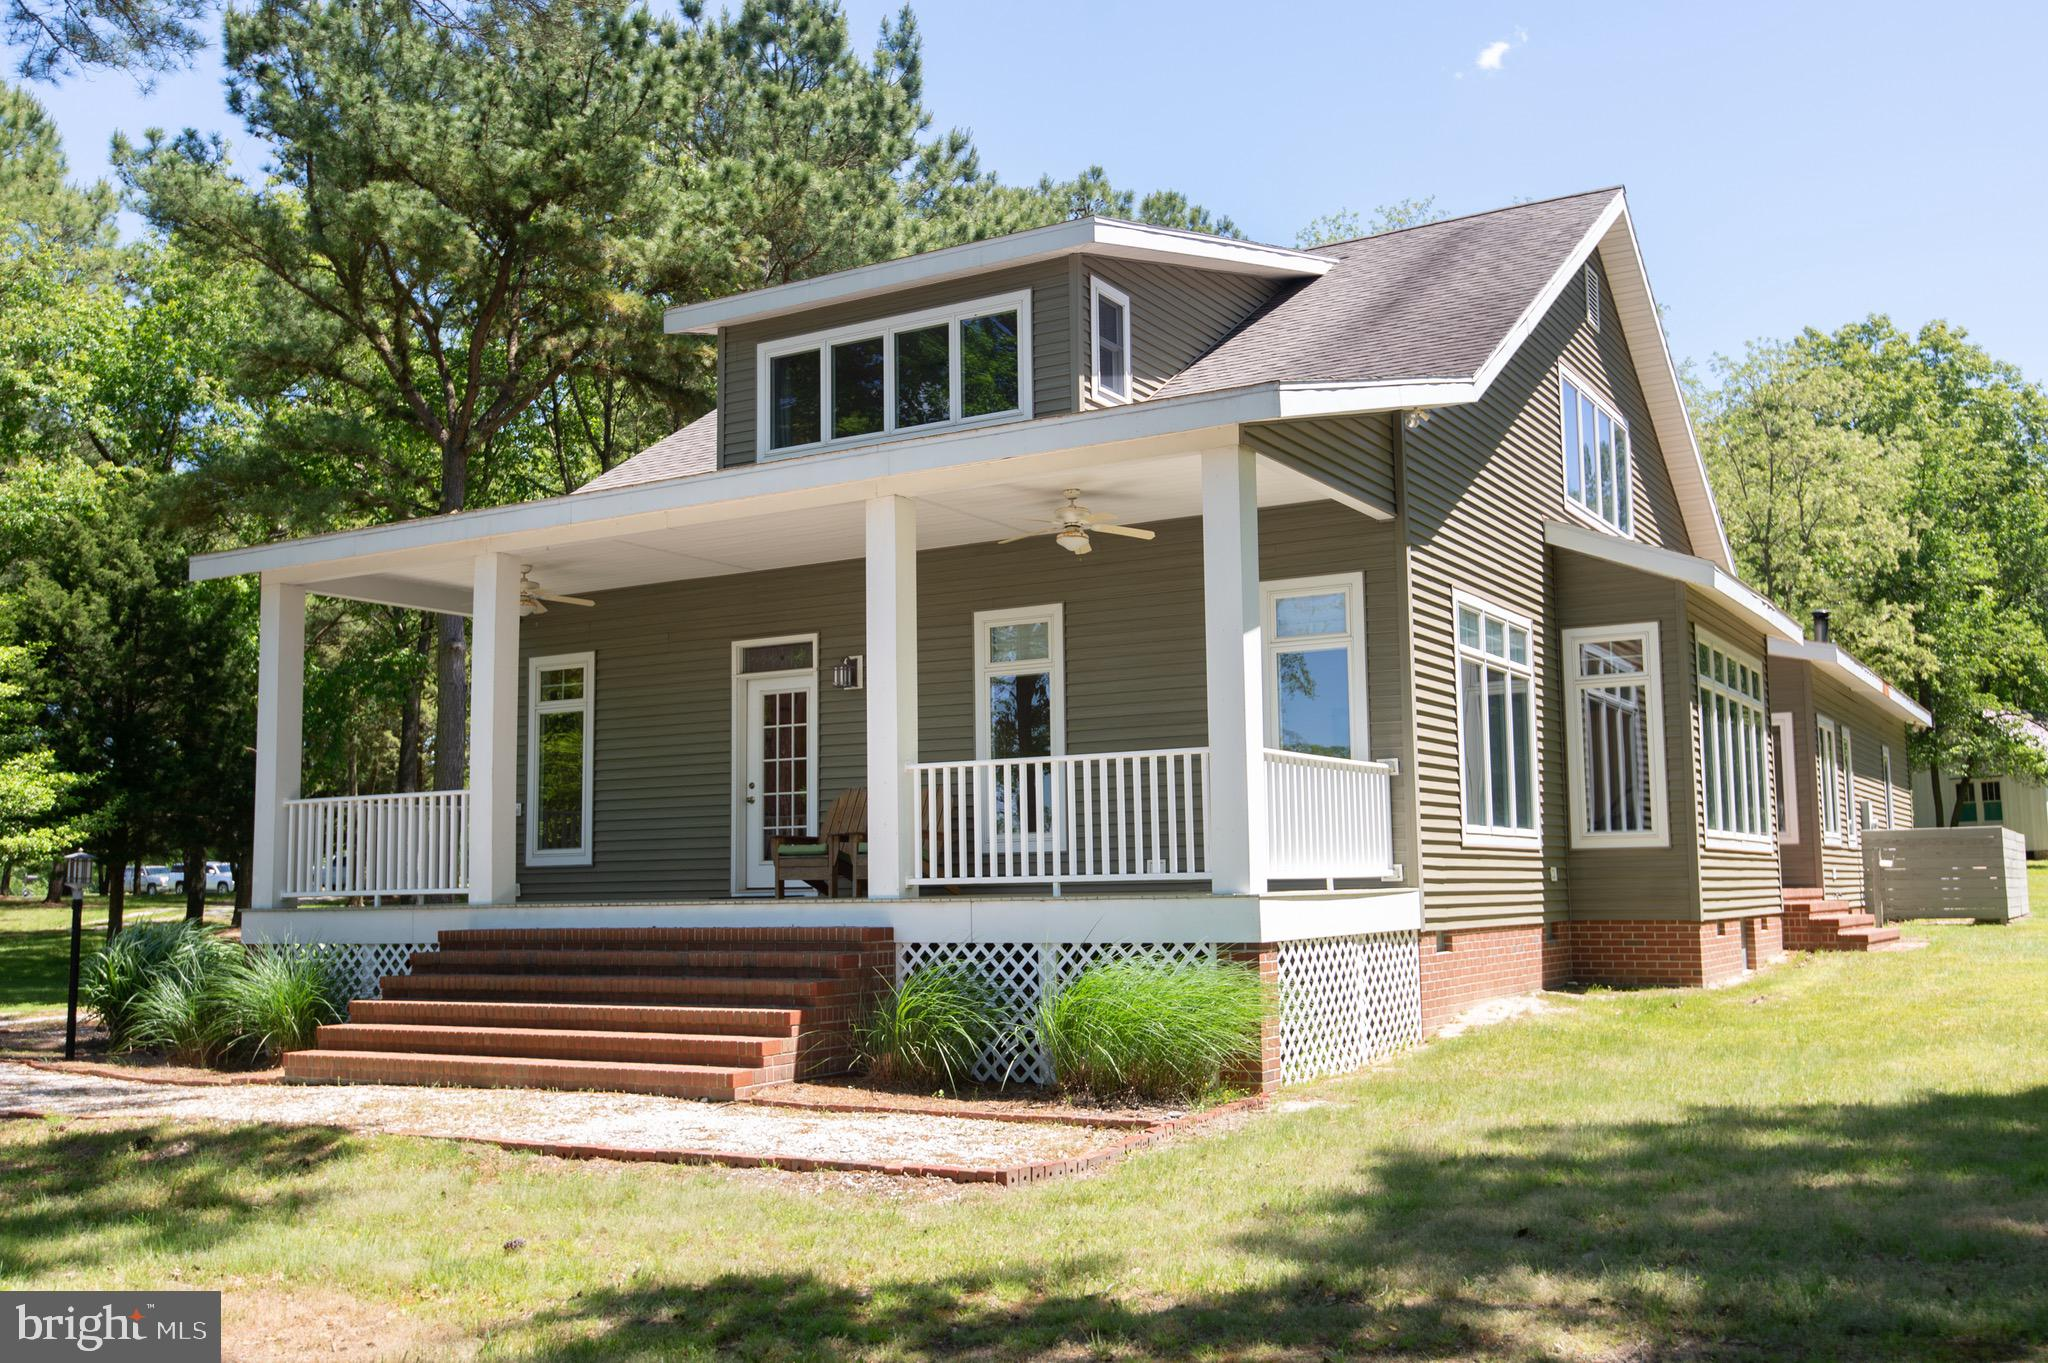 Exceptional home - exceptional location!  Enjoy the bright interior of this Craftsman style  home on 5 +/- wooded acres, built by a local master craftsman.  It features  9 ' ceilings, and a  well thought out floor plan offering true Eastern Shore views of water, marshes and woods. Porches on three sides. Located on a cove off of Cabin Creek, you will love the  peaceful view of the water and it's  a  great spot for kayaking, bird and nature watching .  Hardwood floors throughout.  Large master bedroom suite on the first floor, with double vanity and walk in closet.  The kitchen/family room has a large island and a fireplace. Additional dining room and living room. Two bedrooms, a full bath, and a loft area offer versatility on the second floor.  Separate utility room , and an additional half bath, loads of closets and  storage space throughout.  2 car attached  garage,  neat upcycled outbuilding,  and woodshed.   Very cool observation/sleeping platform in the woods.  Warwick School District. Nearby Suicide Bridge and Snug Harbor marinas offer deep water dockage.  One owner loved - you don't want to miss it!